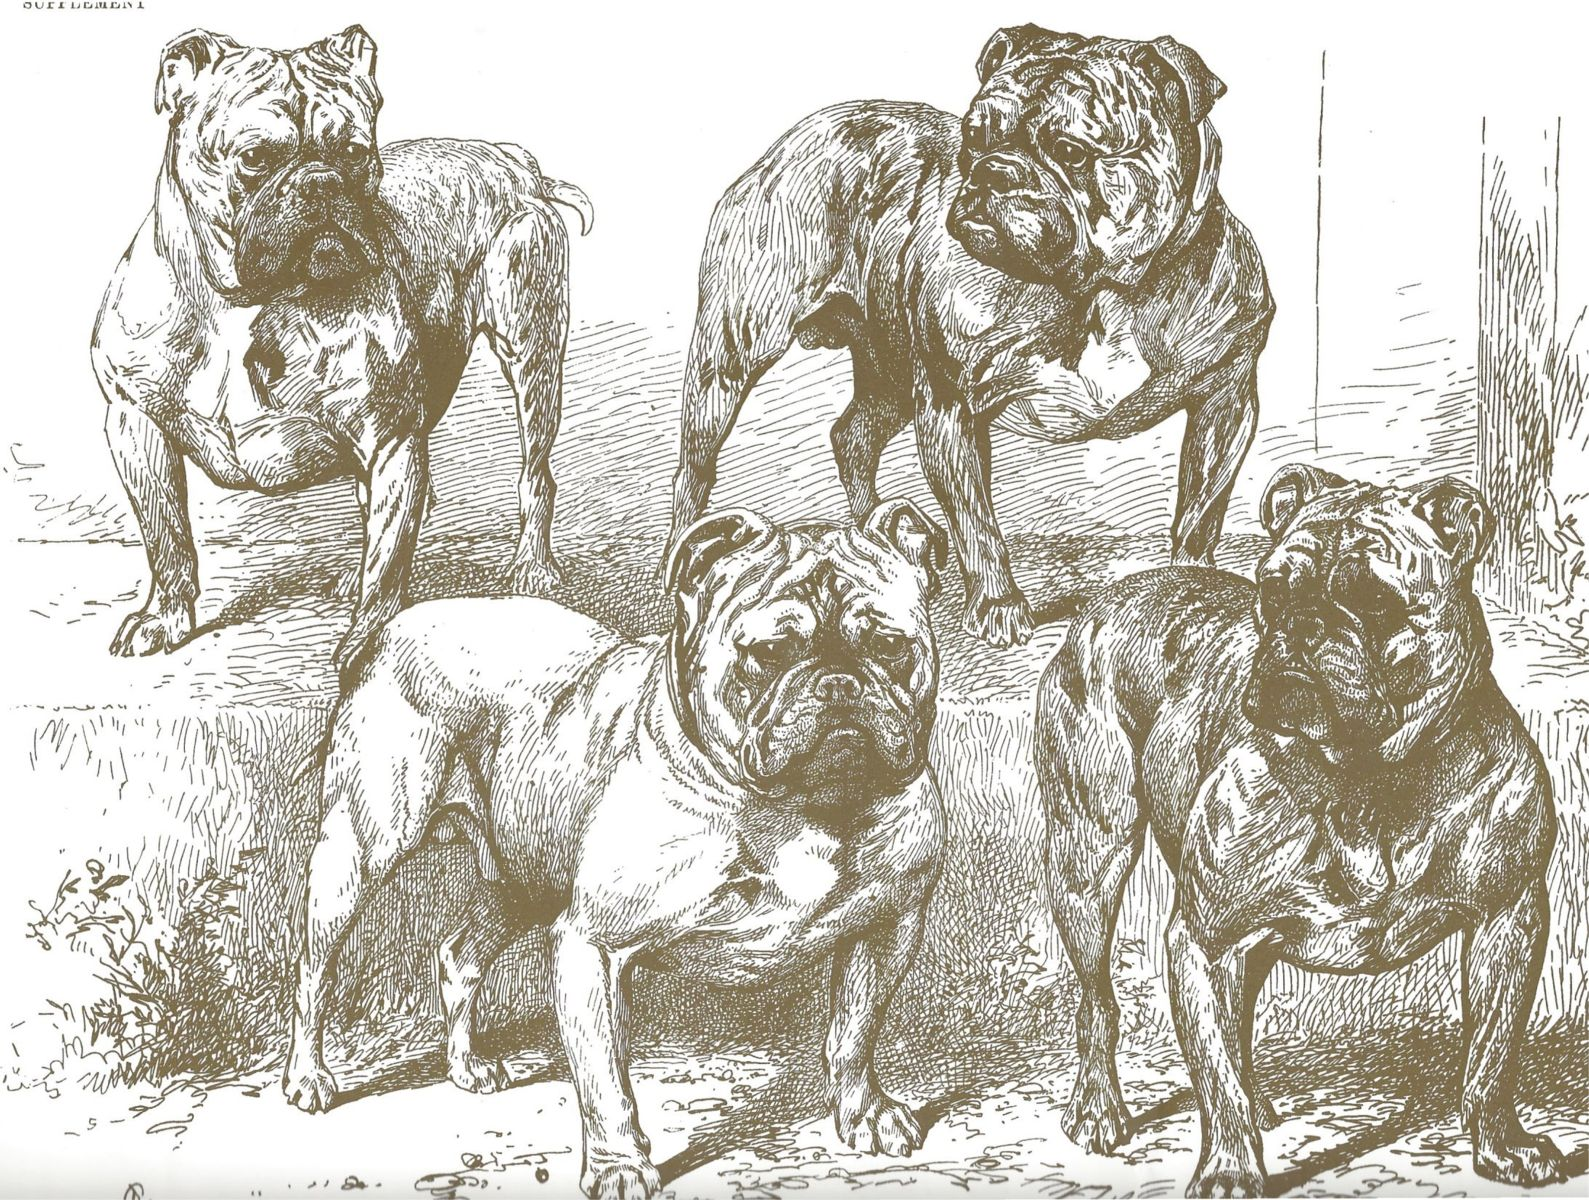 Studie eines Olde English Bulldoggs